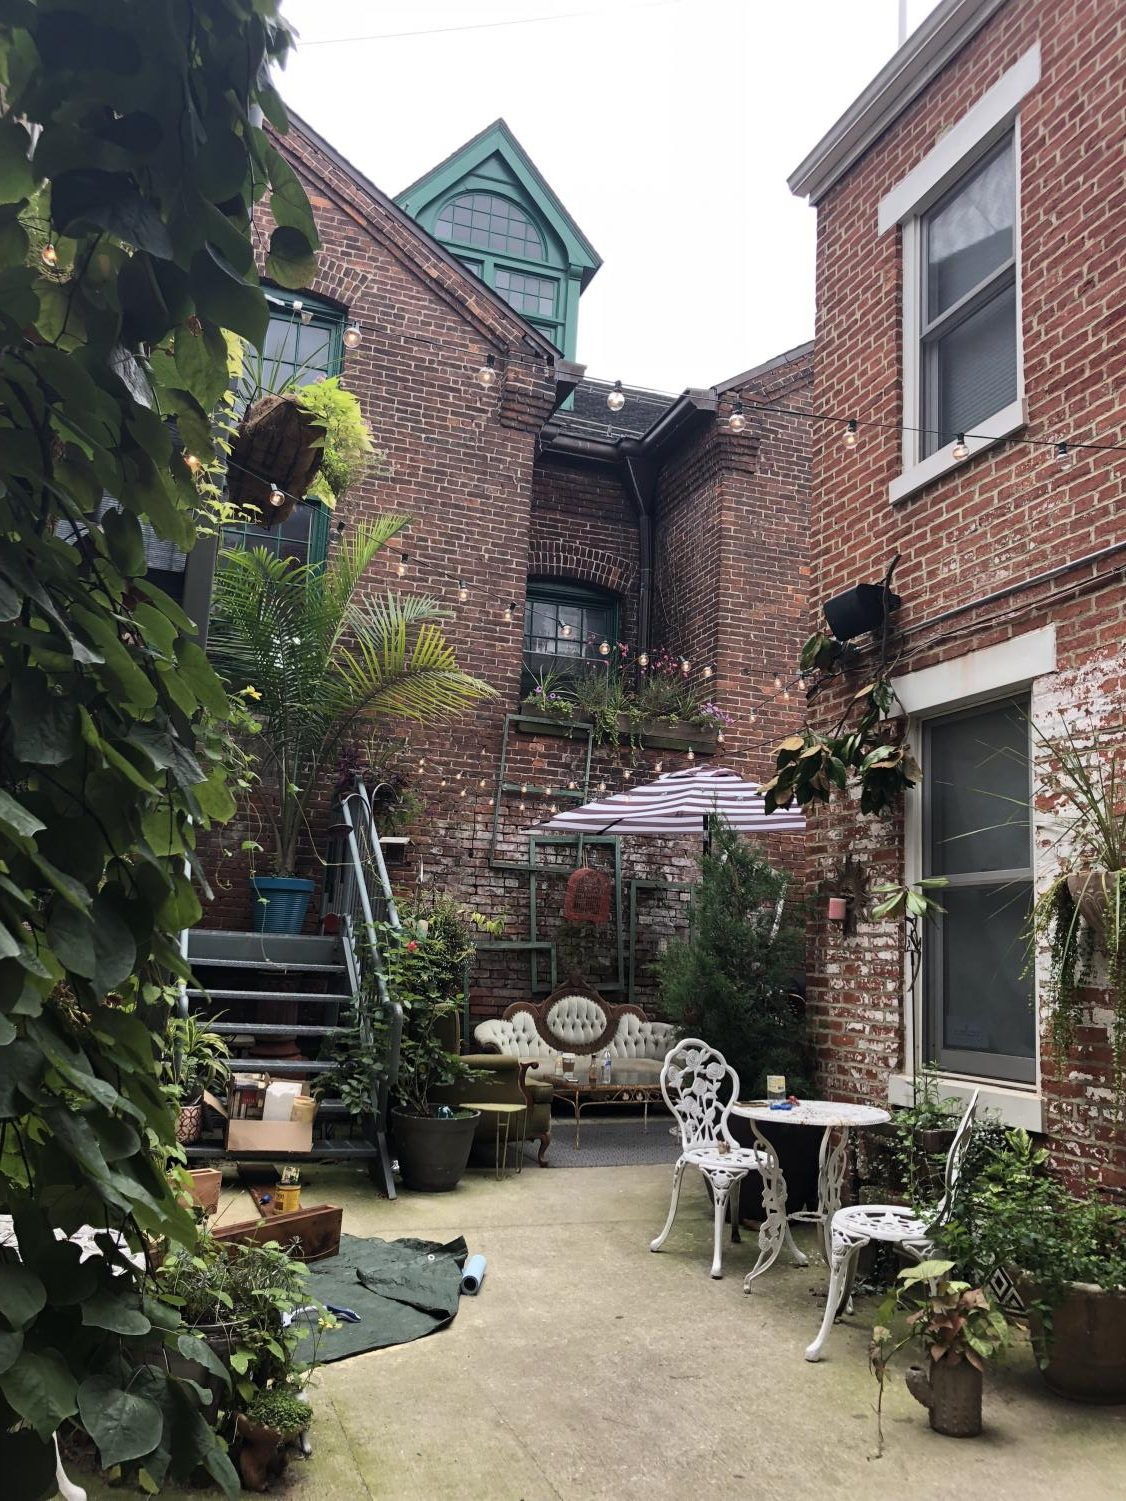 Cherie Anne's courtyard cafe is decorated with plants, vintage sofas, and tables where customers can enjoy a variety of beverages.